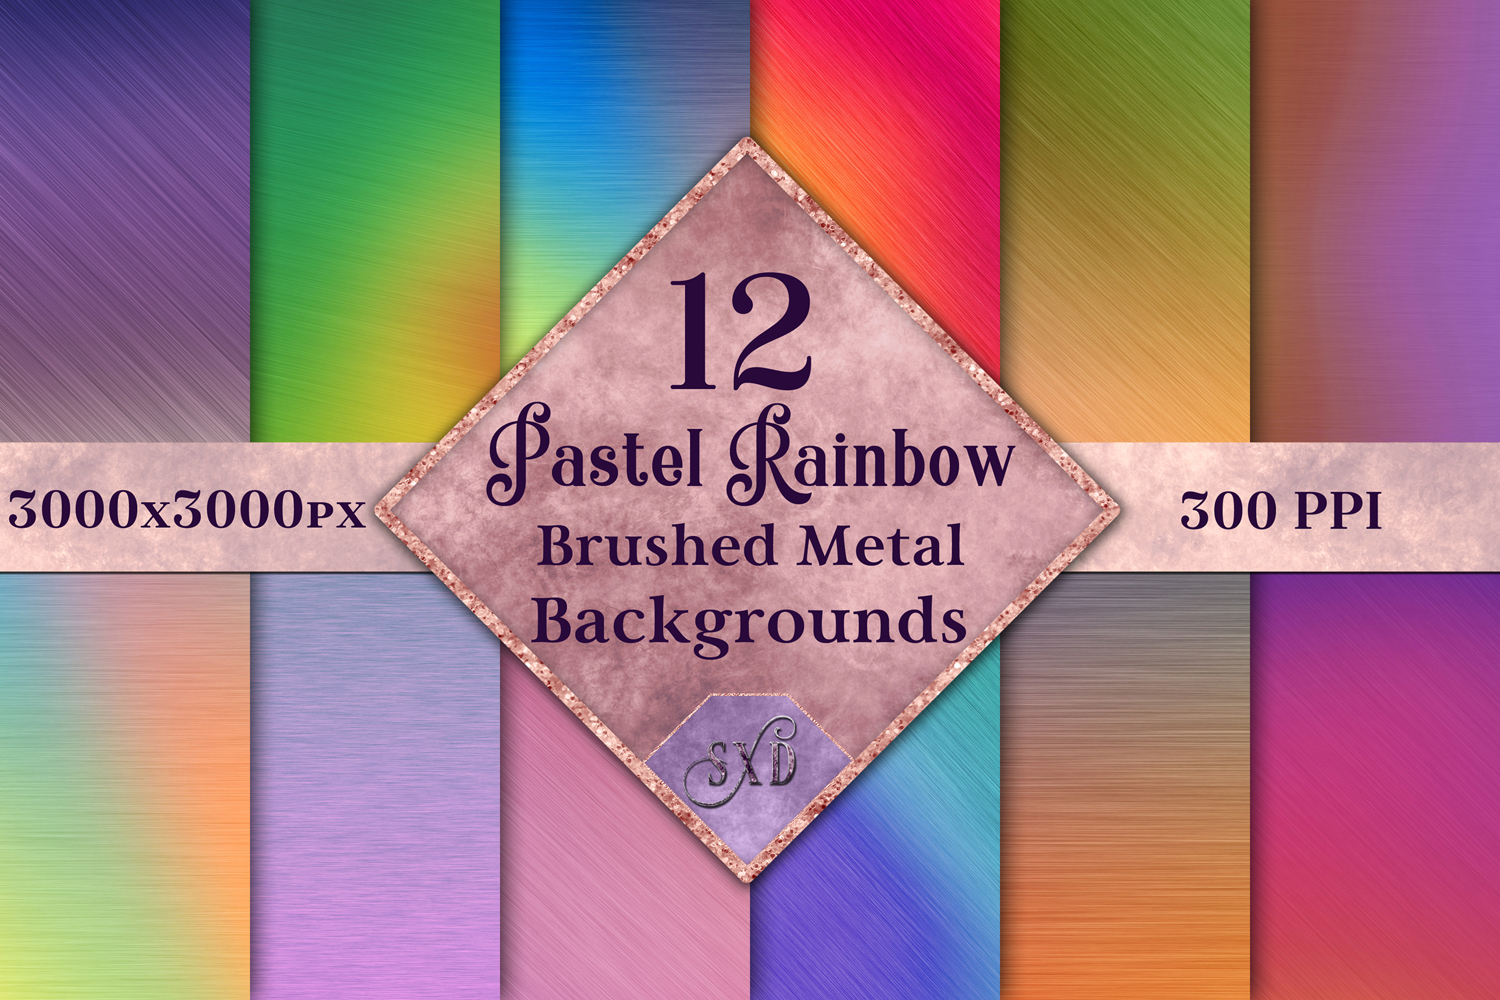 Pastel Rainbow Brushed Metal-Style Backgrounds / Textures example image 1